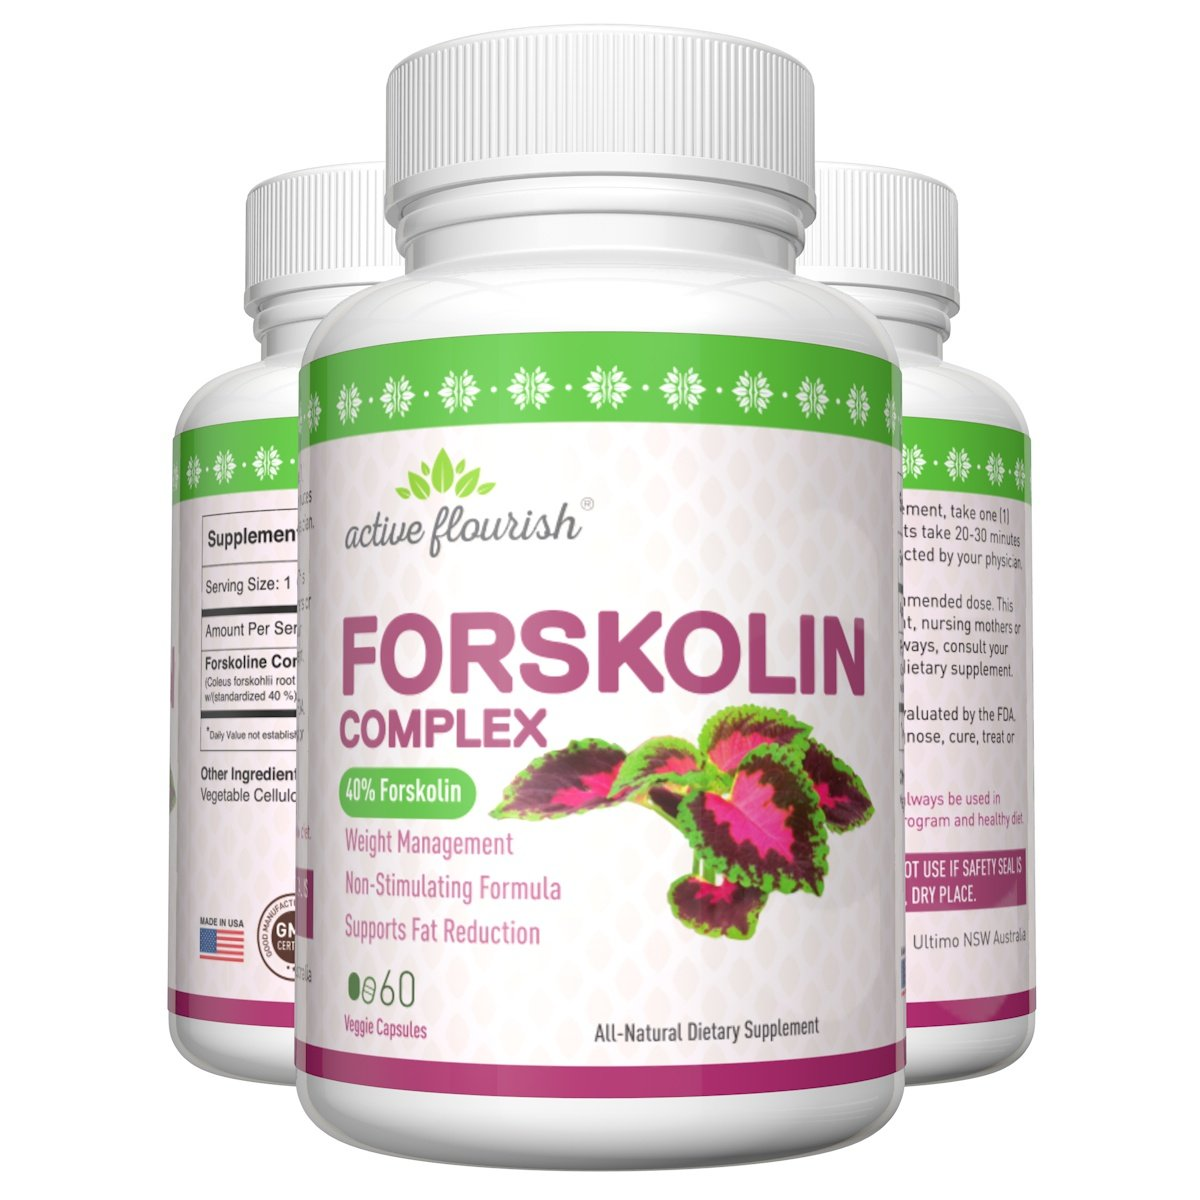 Forskolin 40%, All-Natural Weight Loss, Increase Lean Body Mass, Potential Treatment for Treatment of Bladder Infections and Hypertension 7 1oz 200g hoodia gordonii extract powder natural fat burners for weight loss free shipping